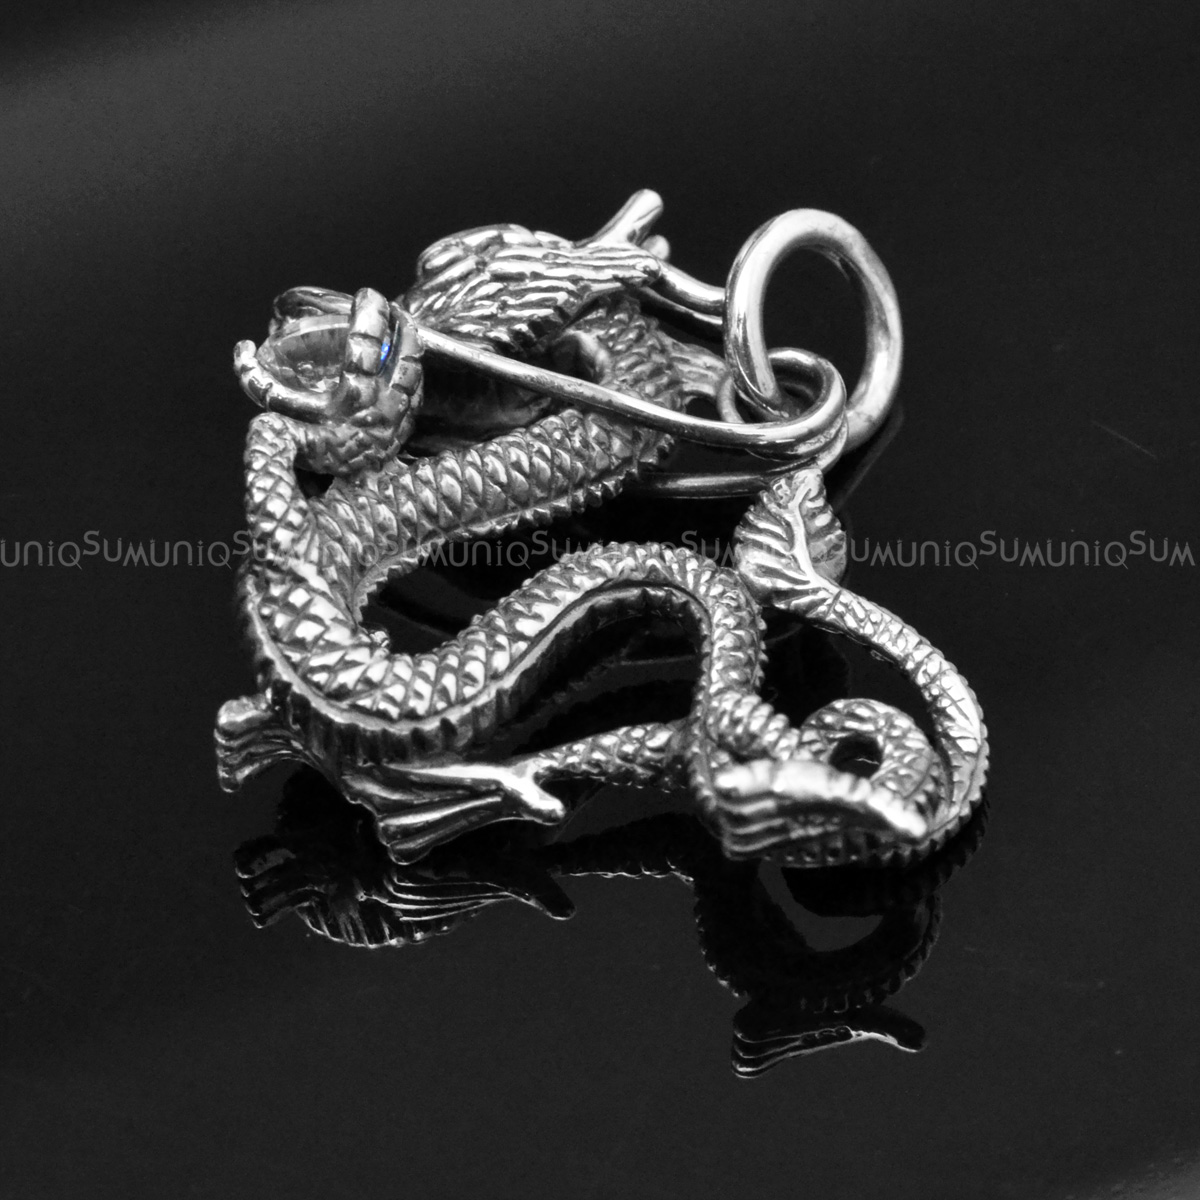 Dragon 925 sterling silver pendant with bright cintamani uniqsum sterling silver charms pendant zirconia cintamani dragon 925 silver necklaces charm aloadofball Image collections